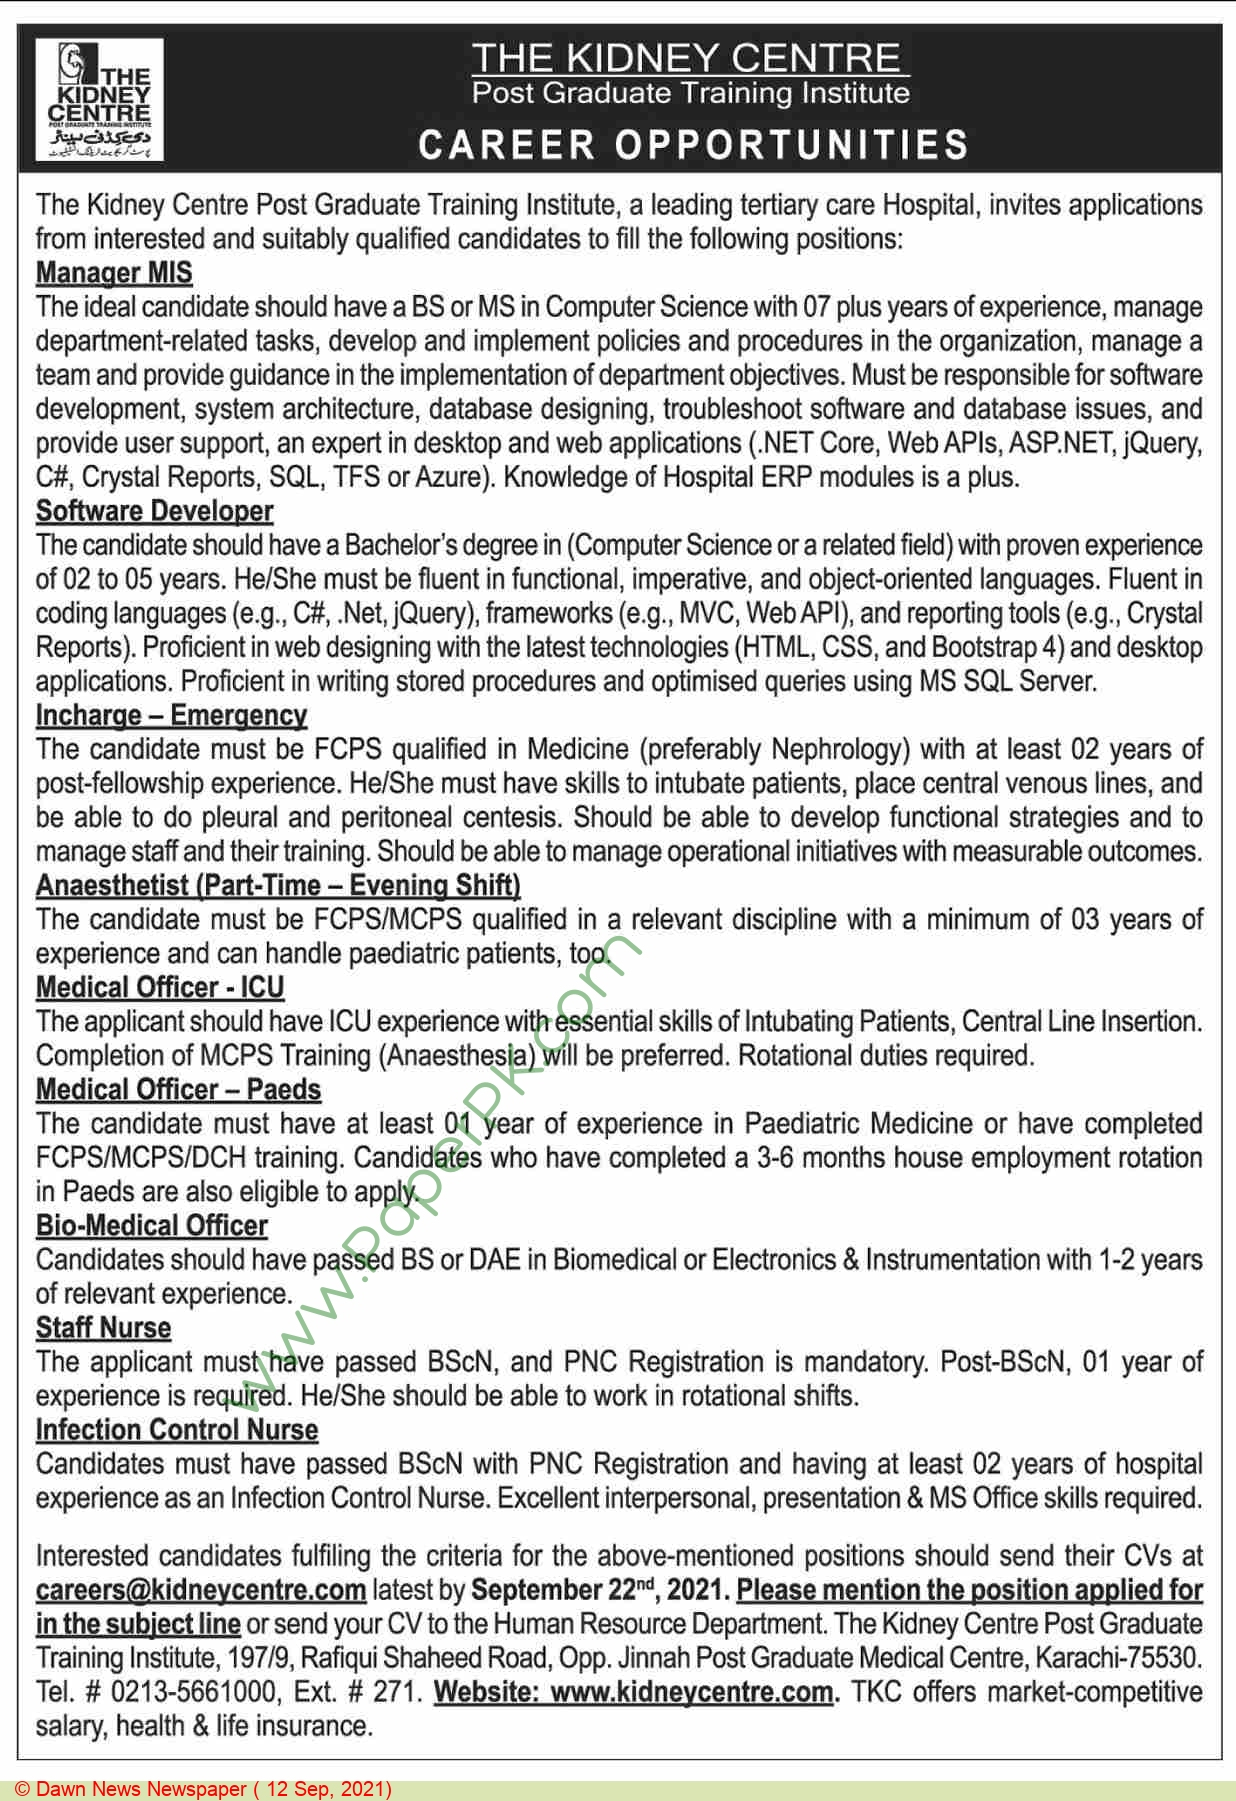 The Kidney Centre Postgraduate Training Institute jobs newspaper ad for Incharge Emergency in Karachi on 2021-09-12